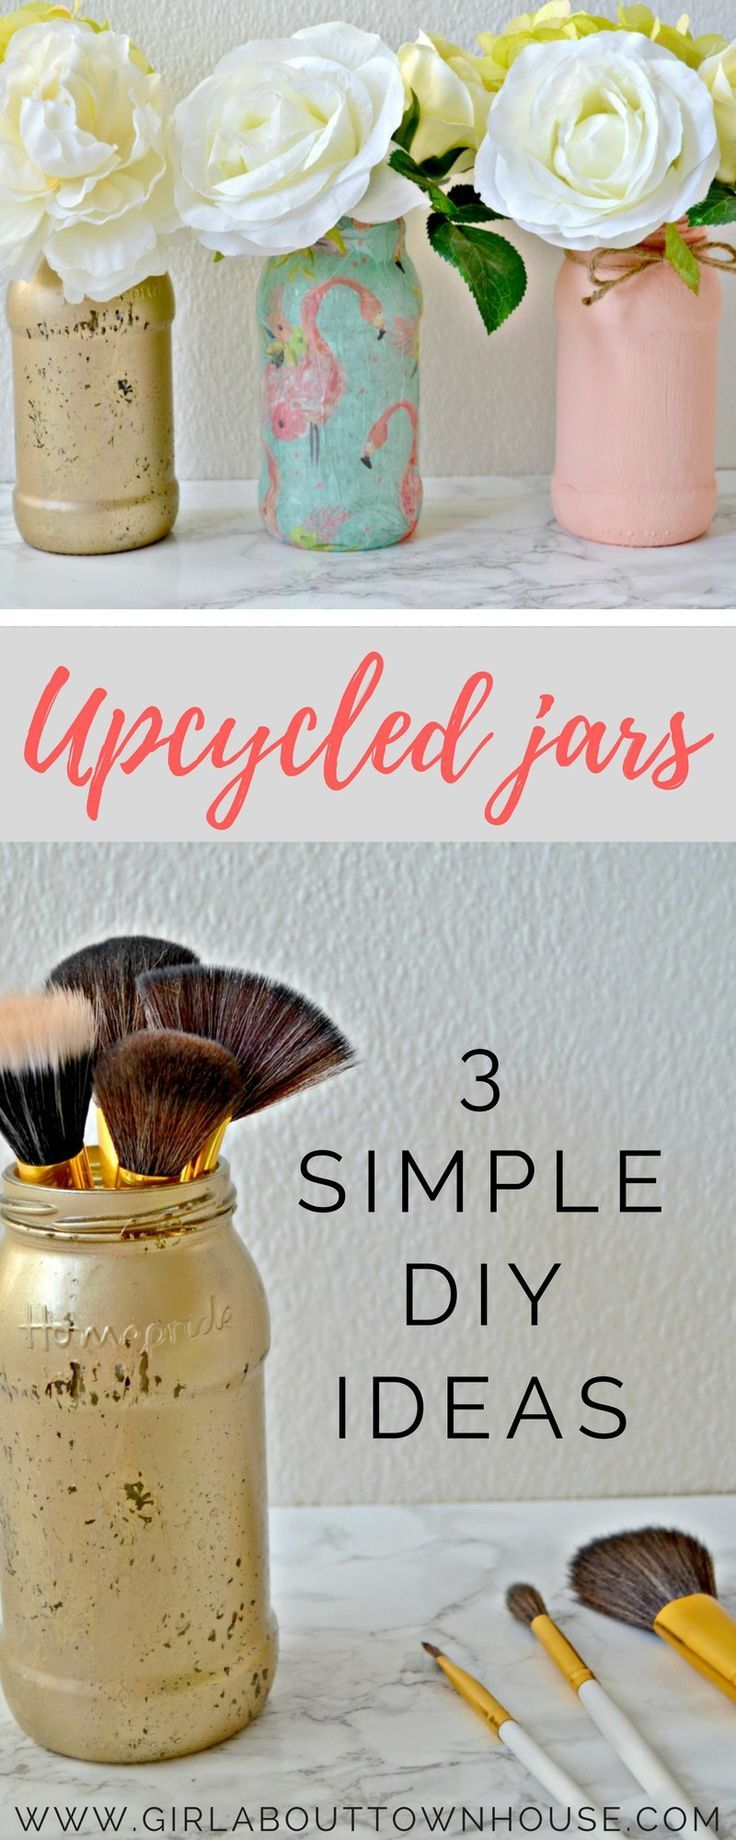 Upcycle jars three simple diy ideas easy diy projects upcycling